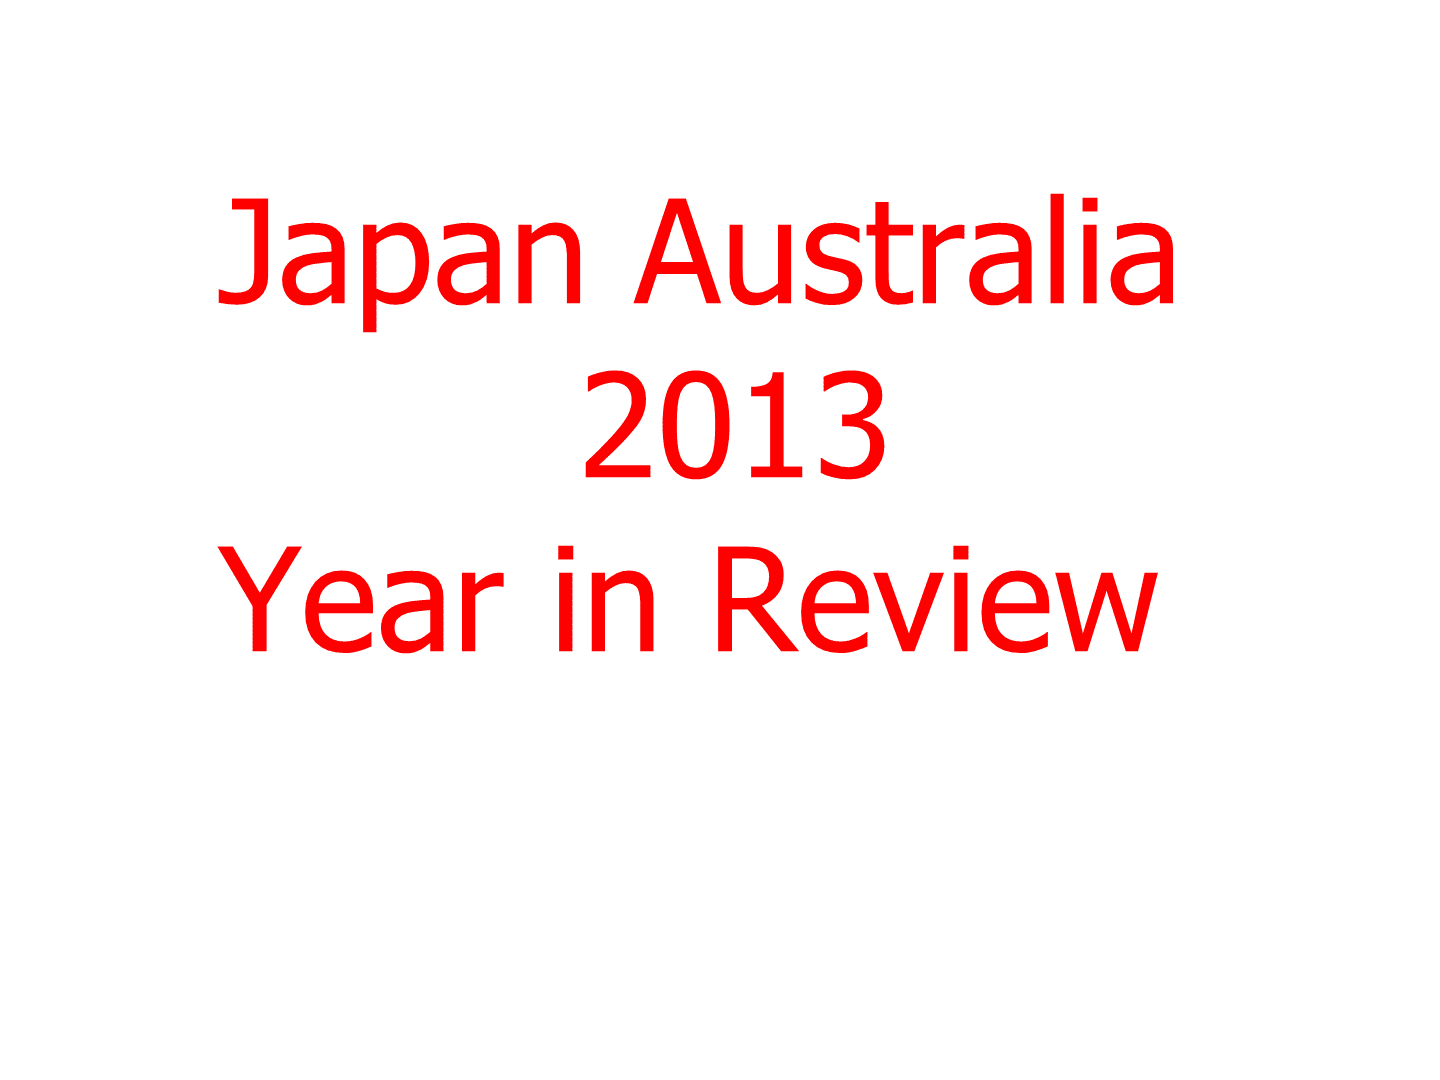 Japan Australia 2013 Year in Review